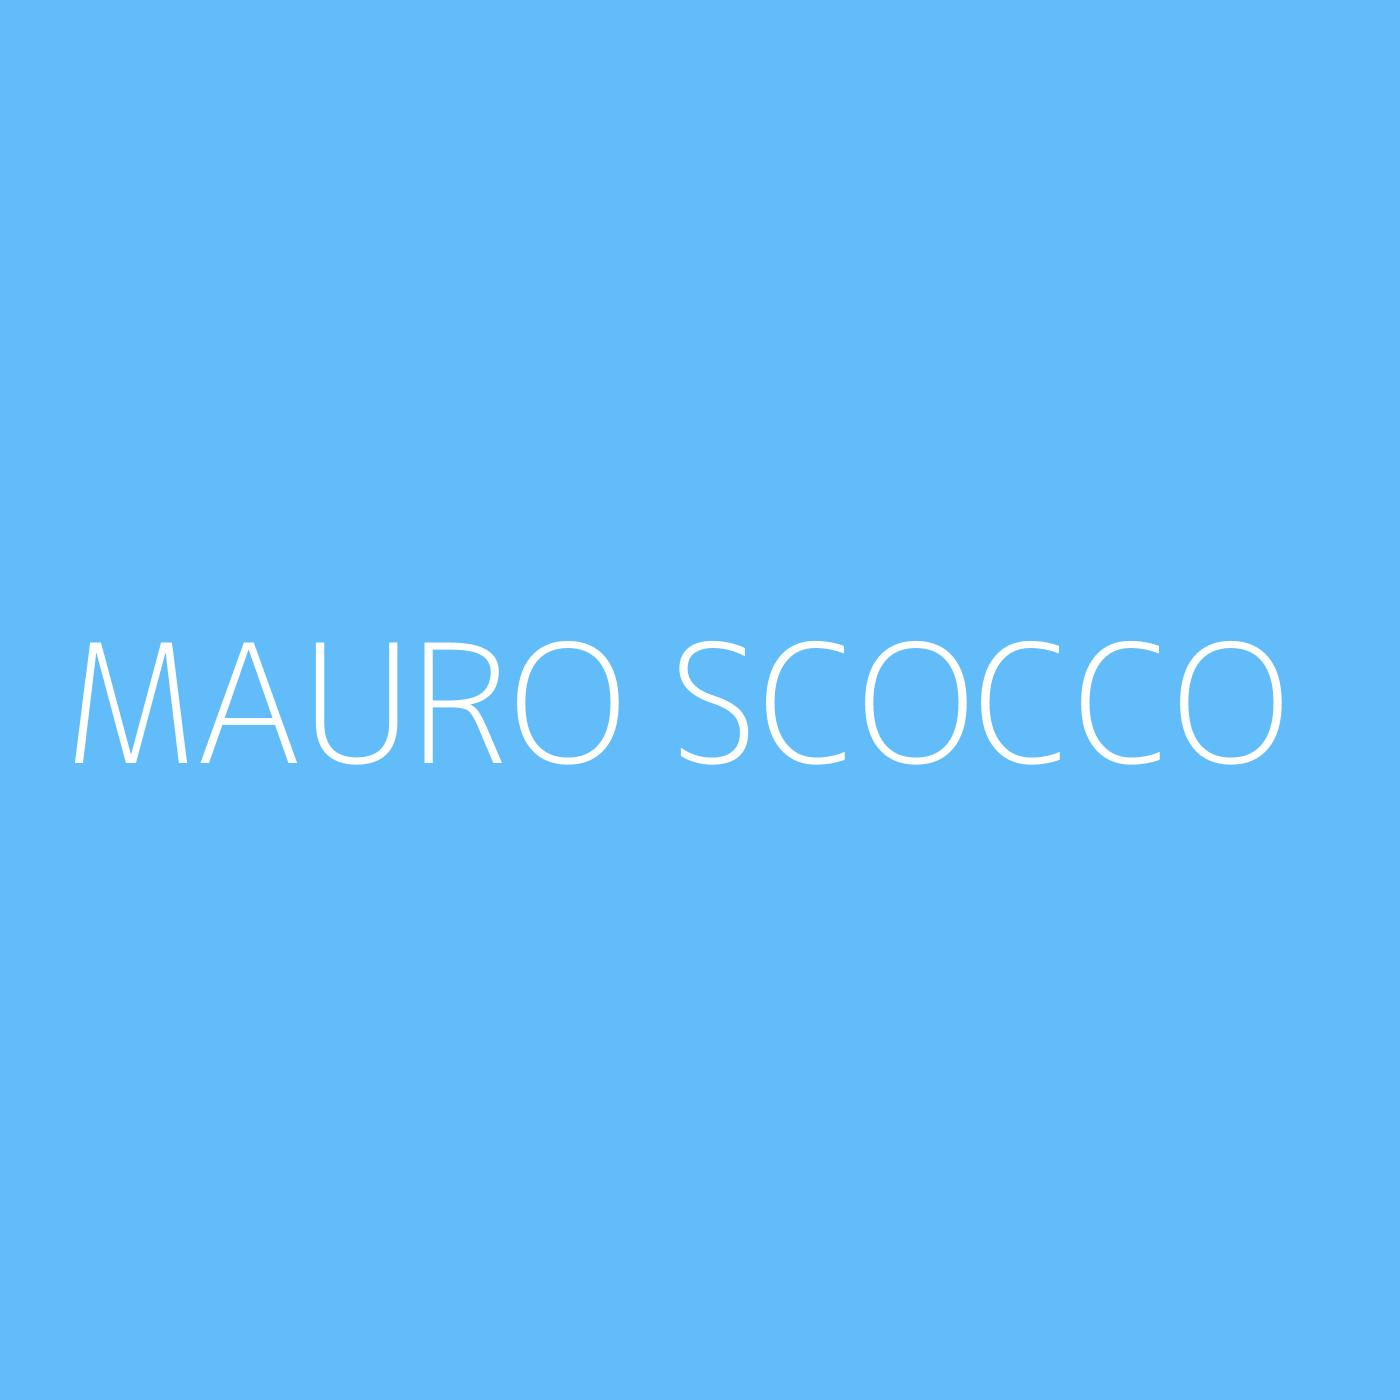 Mauro Scocco Playlist Artwork